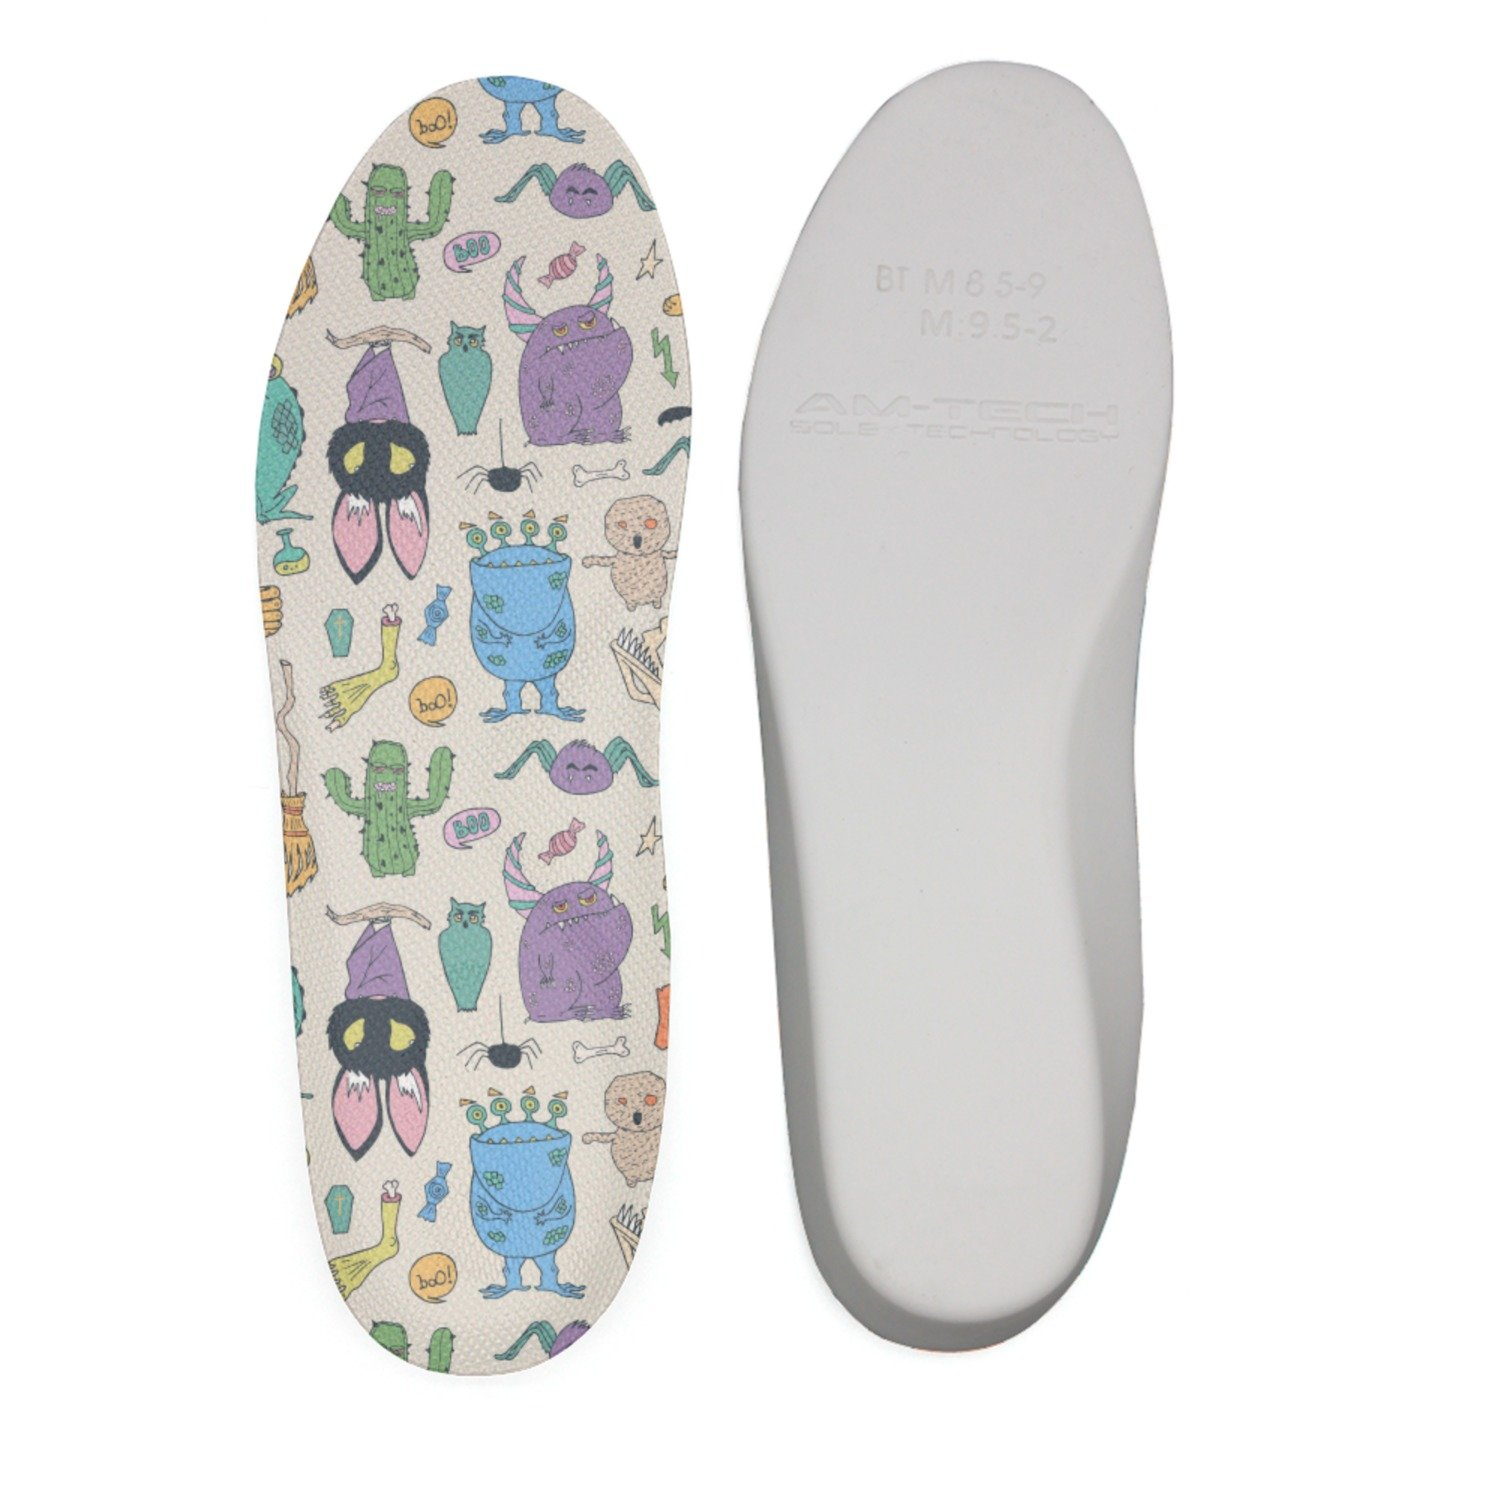 Ether Dobbin Zombie Horror Halloween Scary Monster Comfort Antimicrobial No Stink Insole Full Length Shoe Insole